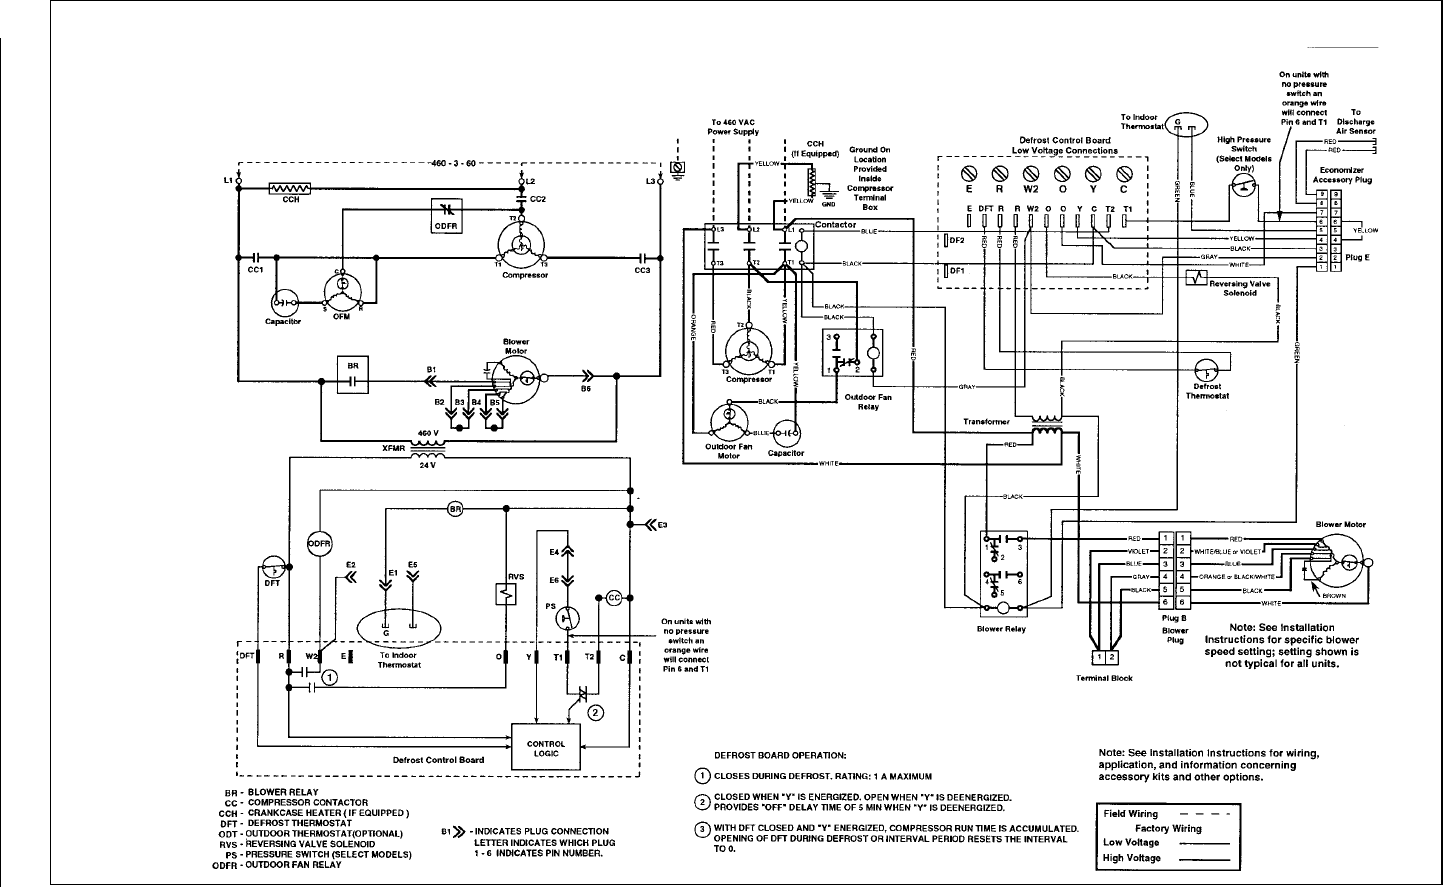 12ef14e5 f0fc 4598 8d26 d64902da494b bg12 wiring diagram for coleman furnace the wiring diagram nordyne wiring diagram at reclaimingppi.co